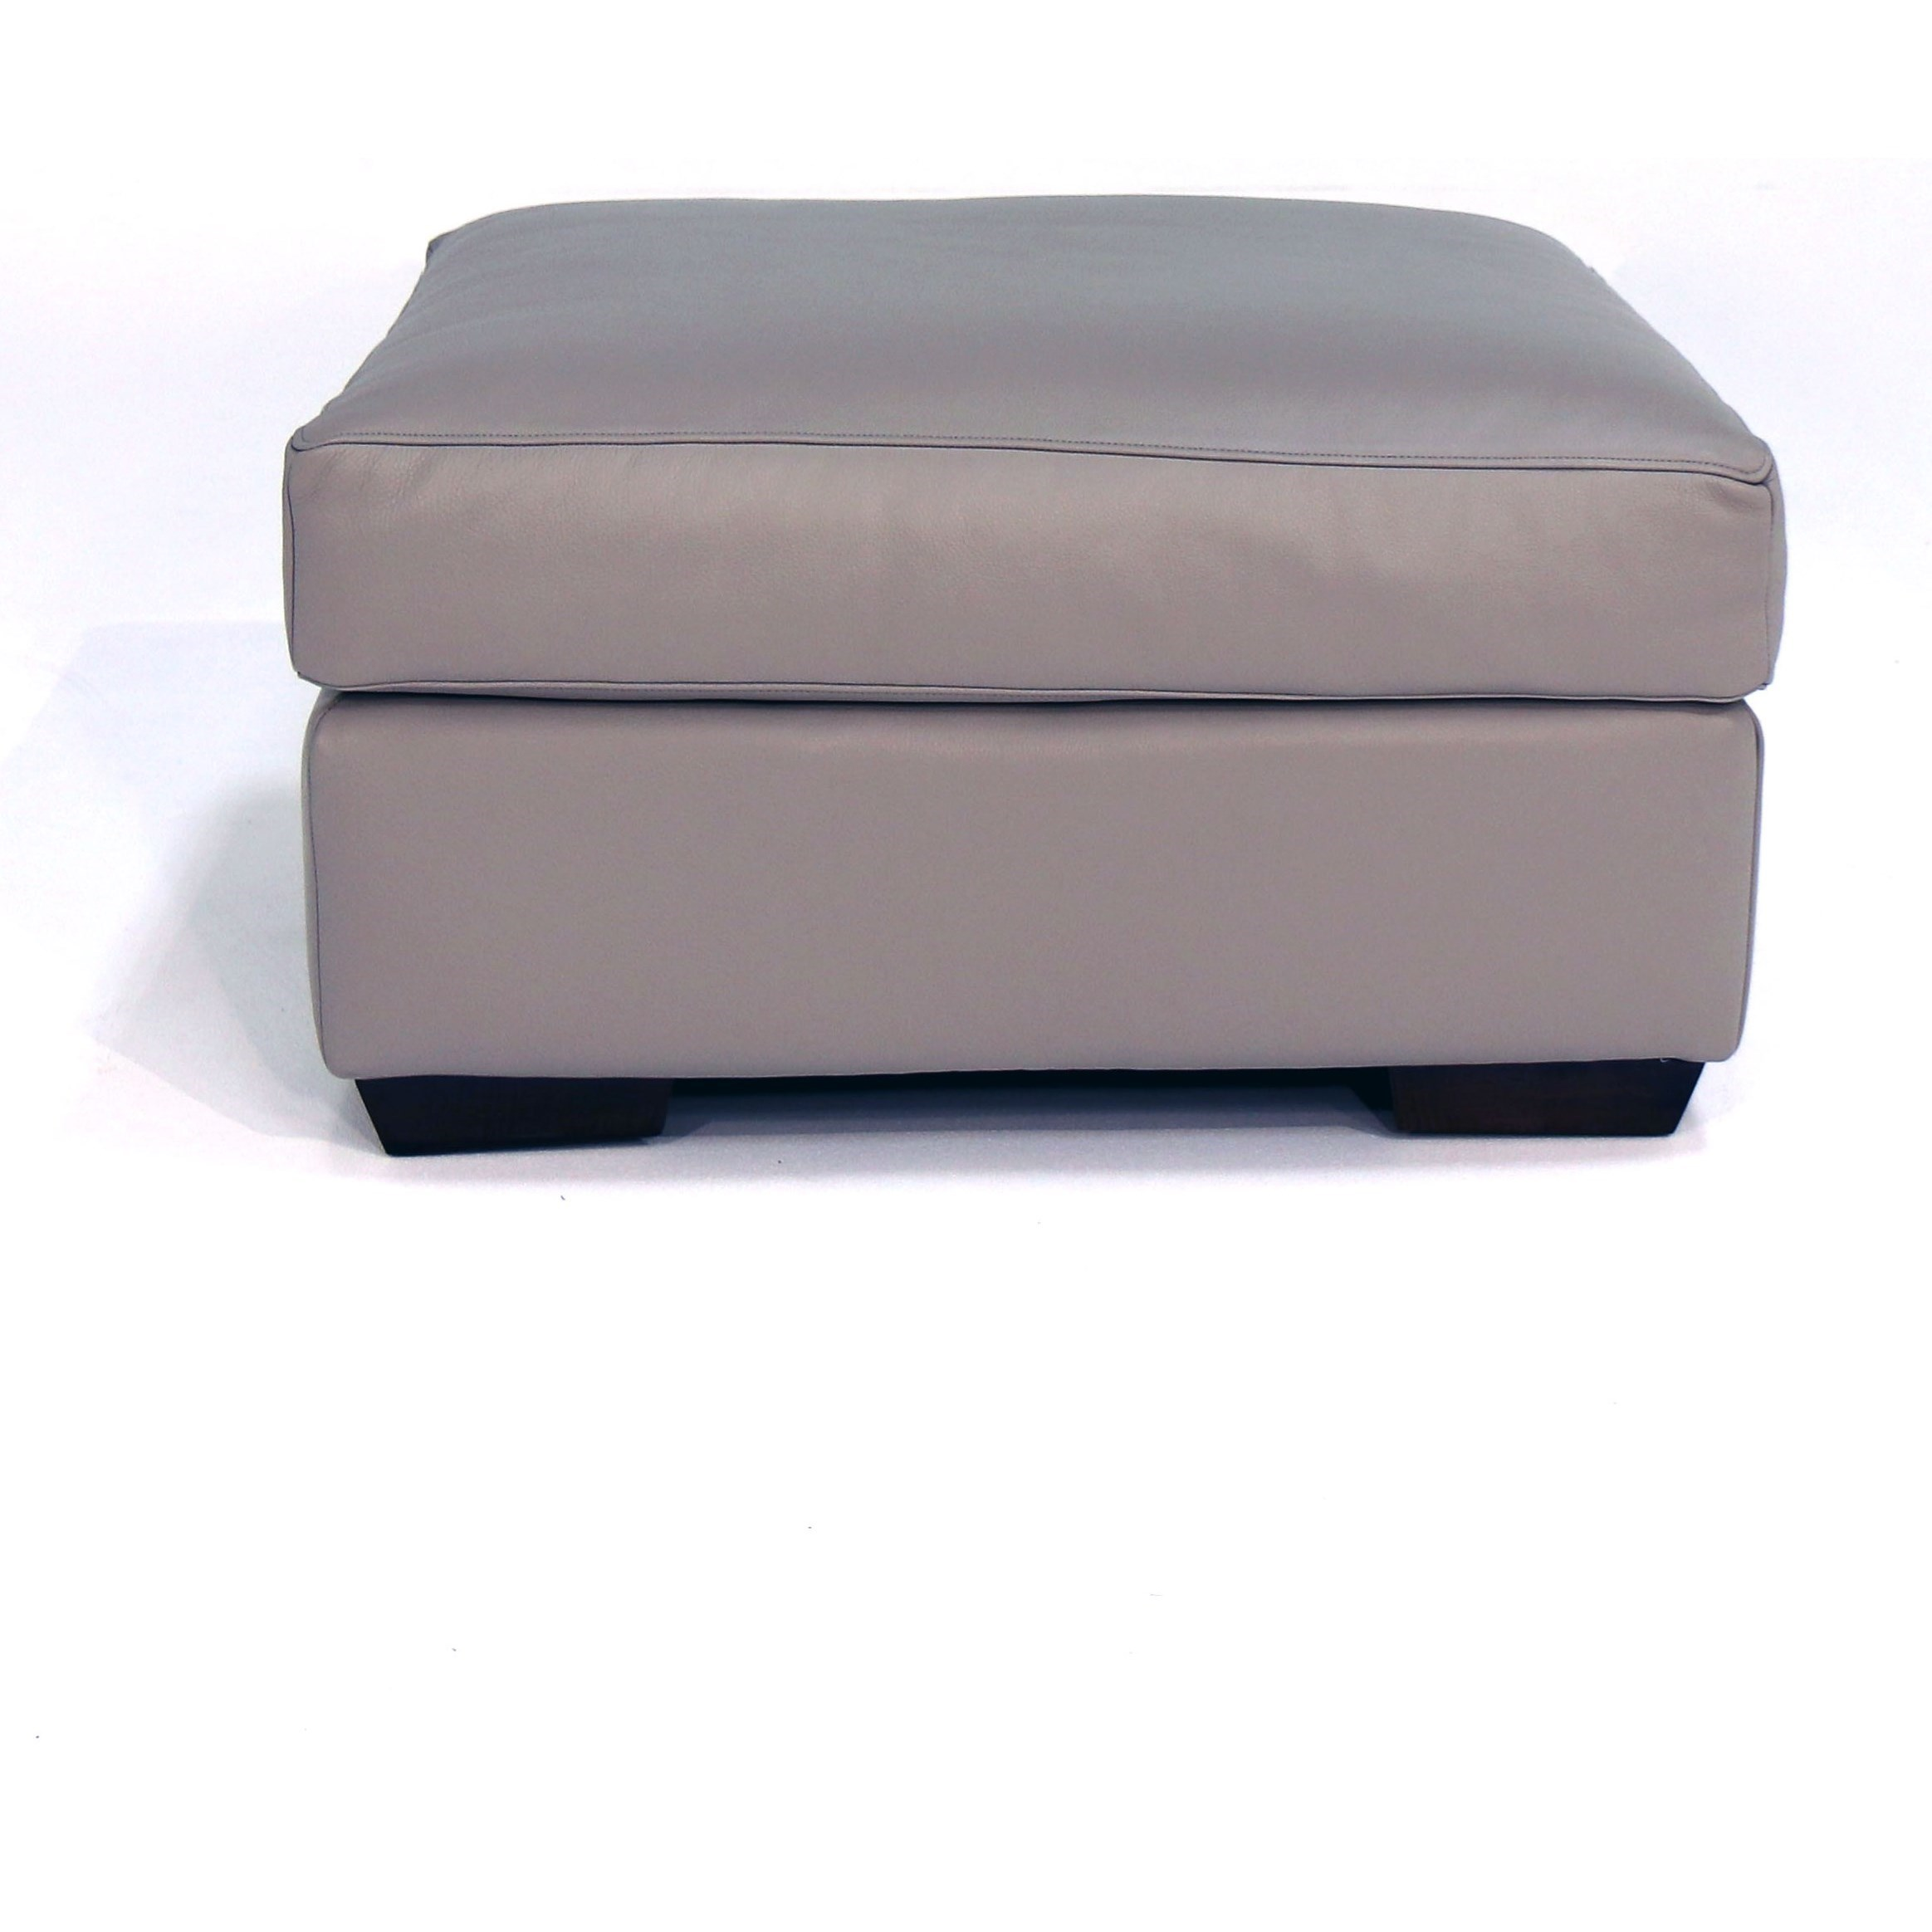 L783950 Ottoman by Craftmaster at Baer's Furniture